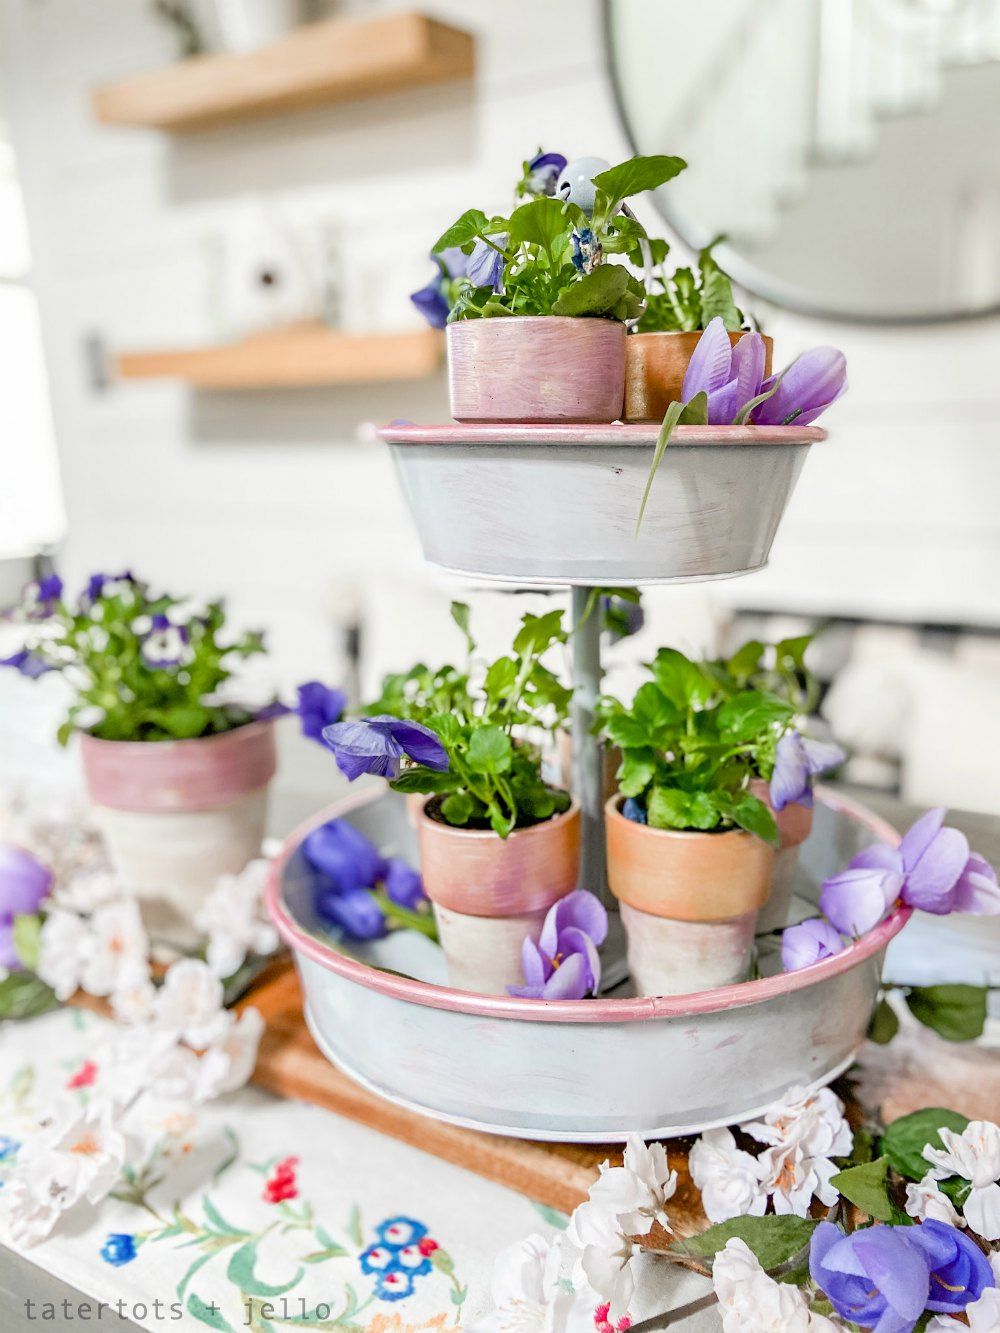 Painted Suede and Metallic Terra Cotta Pots Centerpiece. Create a beautiful Spring centerpiece or pots for your porch with this easy tutorial using suede and metallic paints!